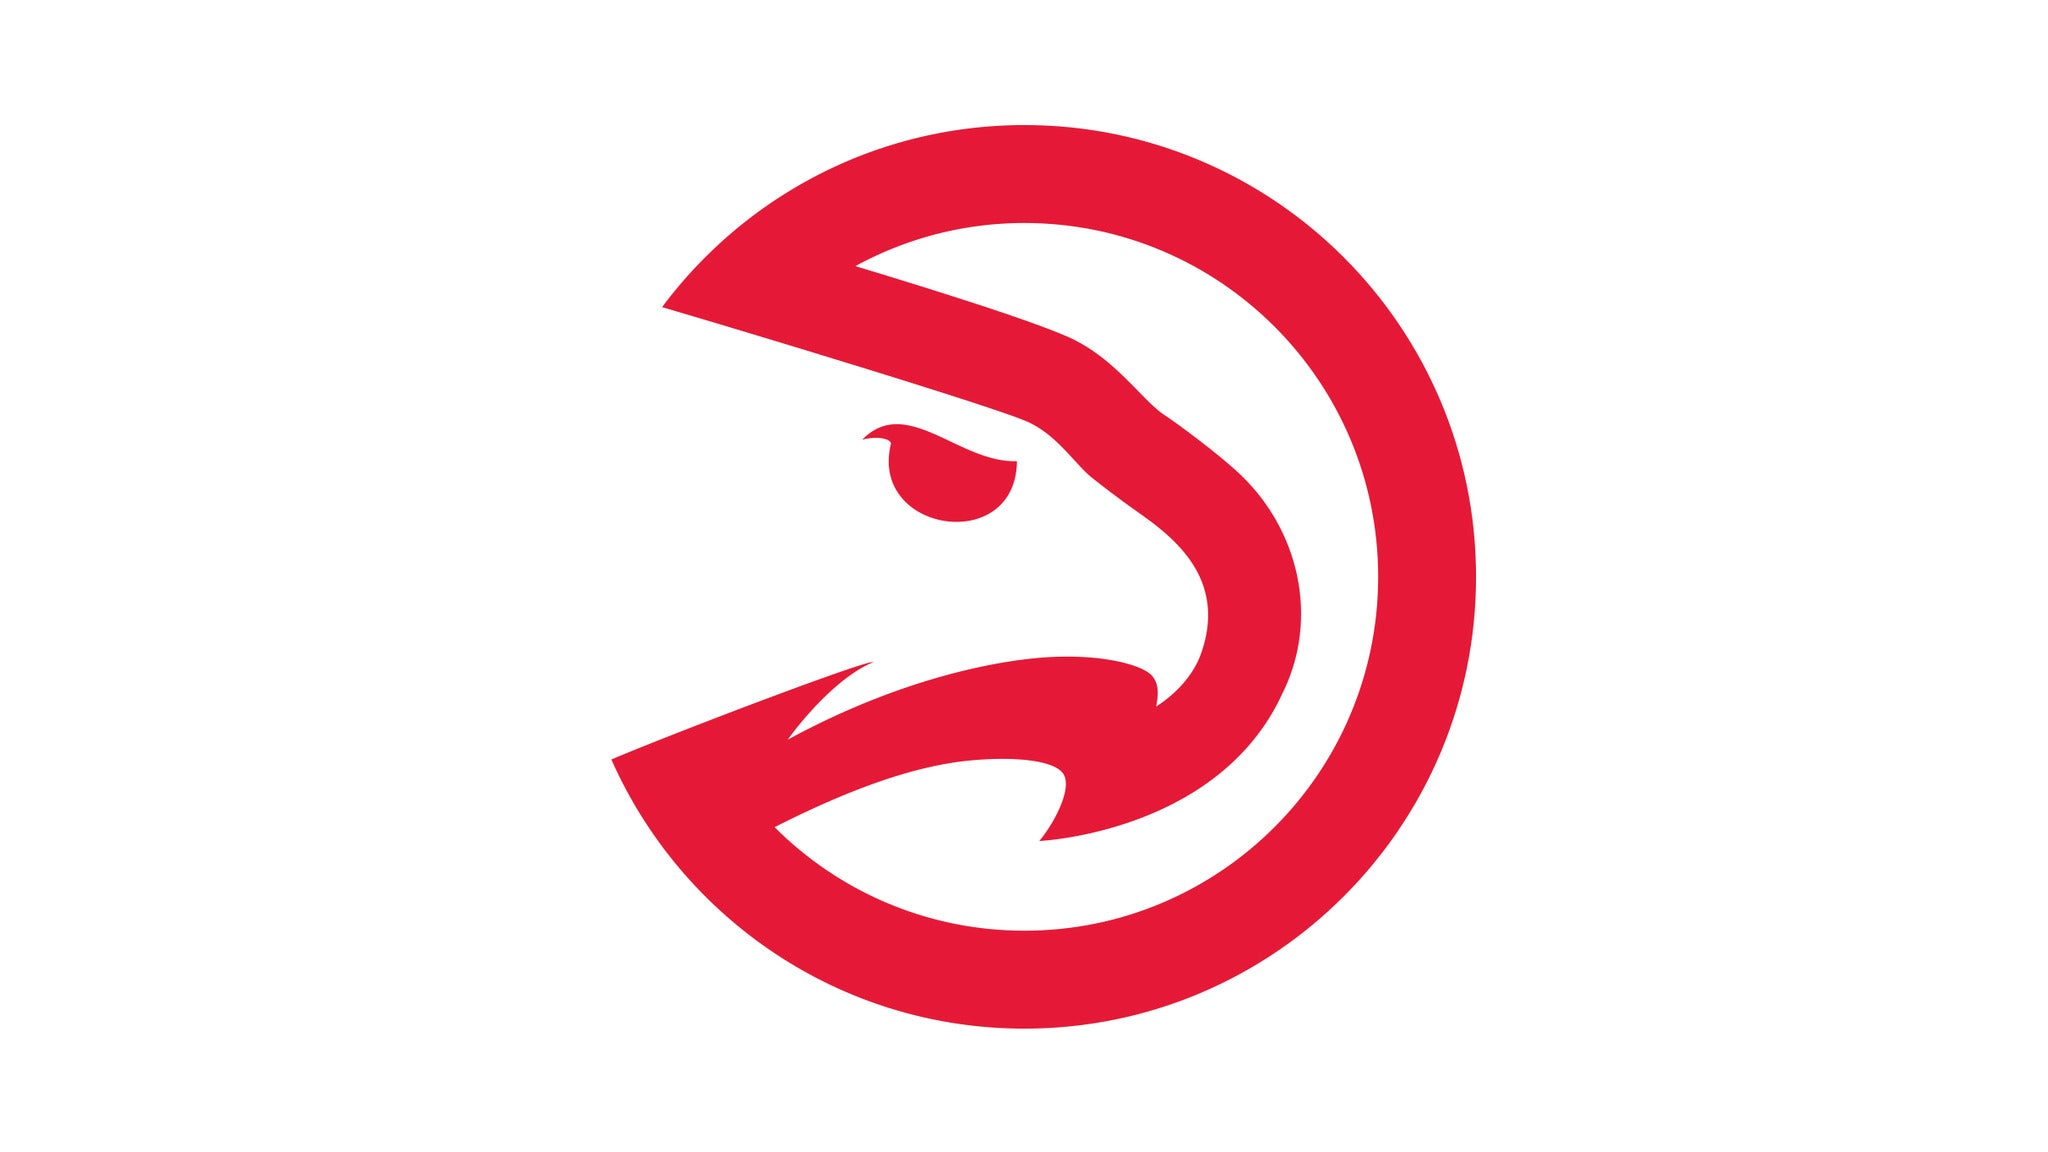 Atlanta Hawks vs. Chicago Bulls at State Farm Arena